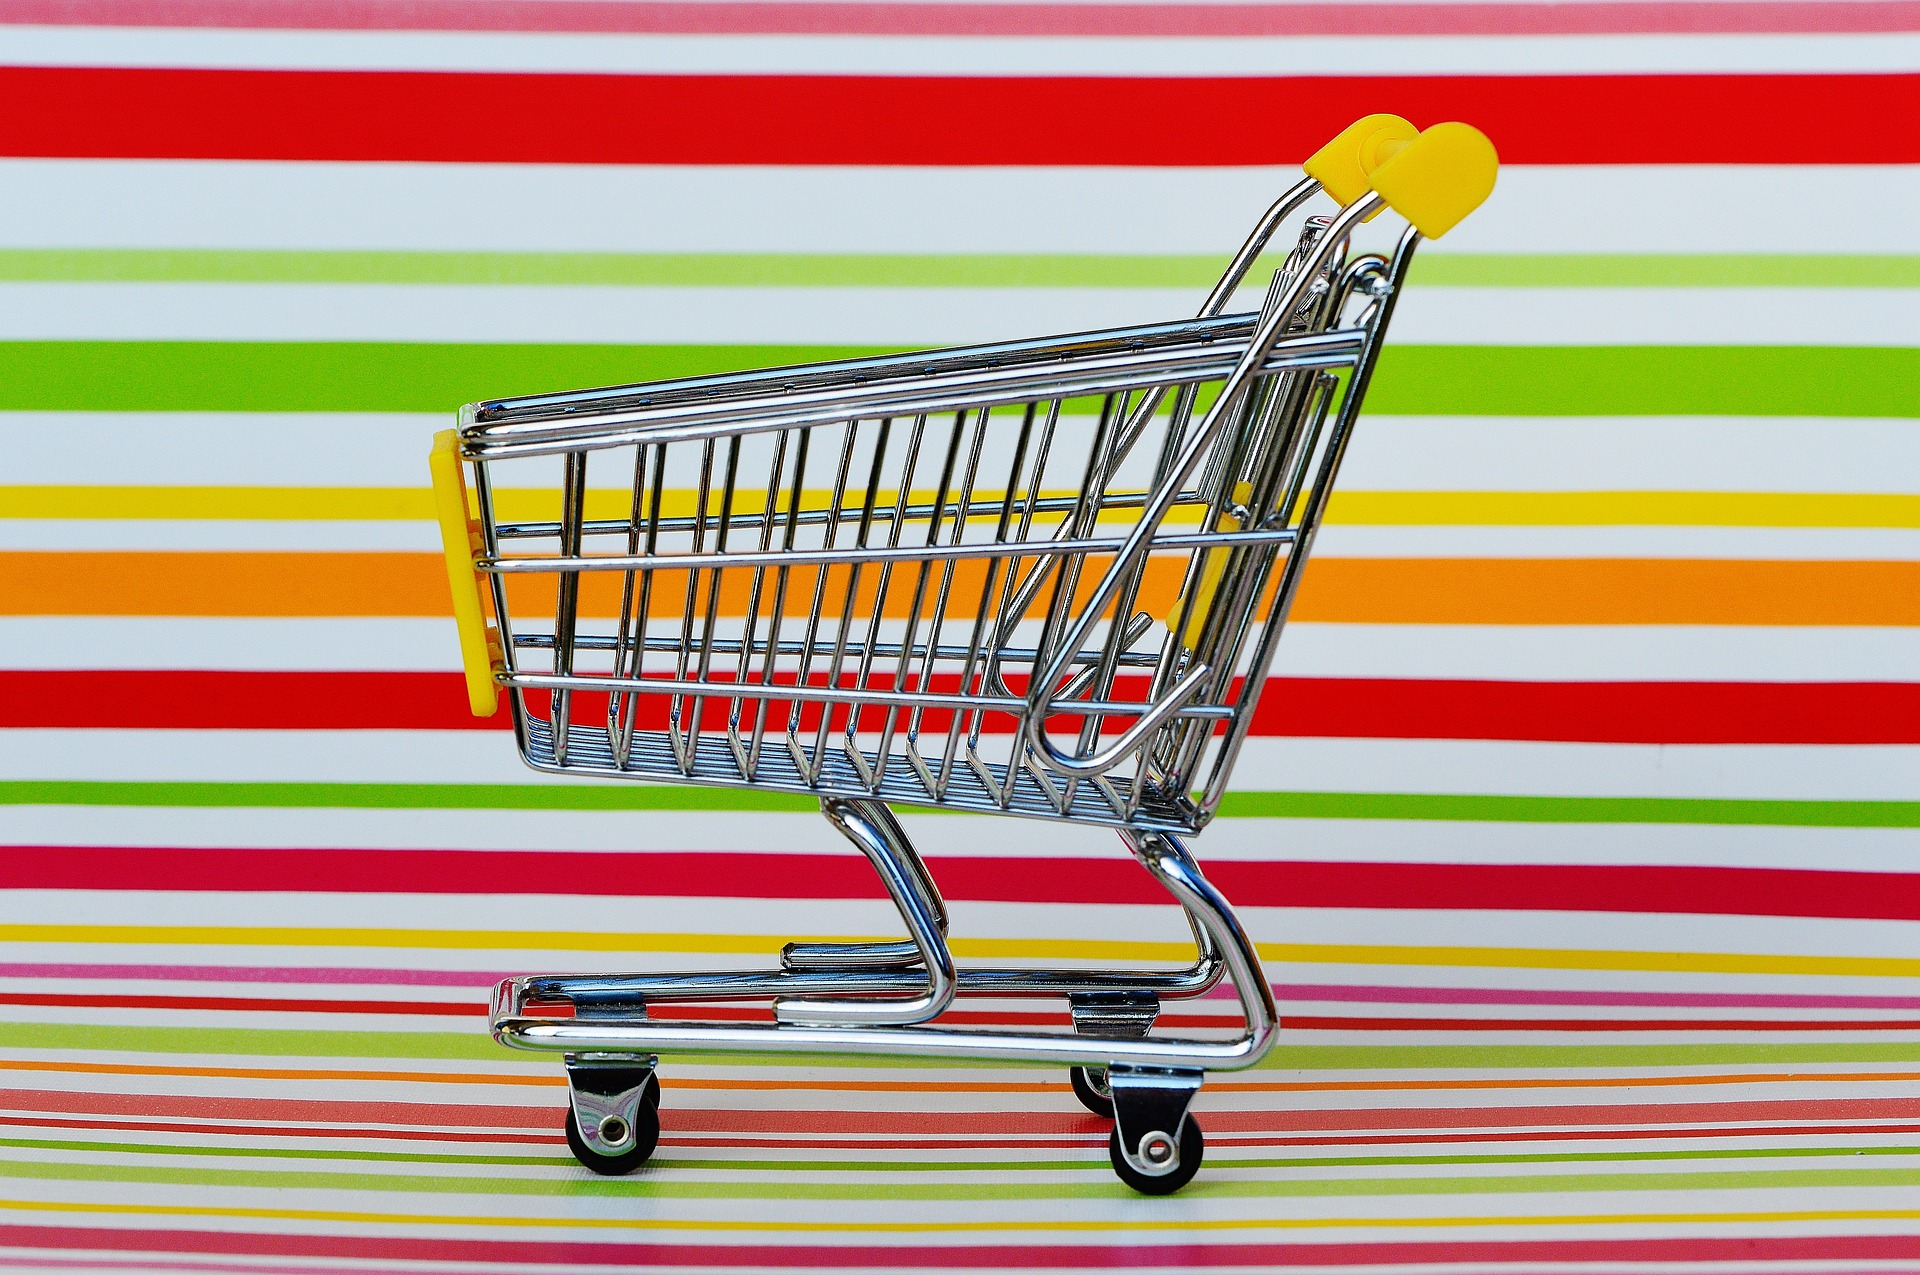 Why does food end up in your trolley?